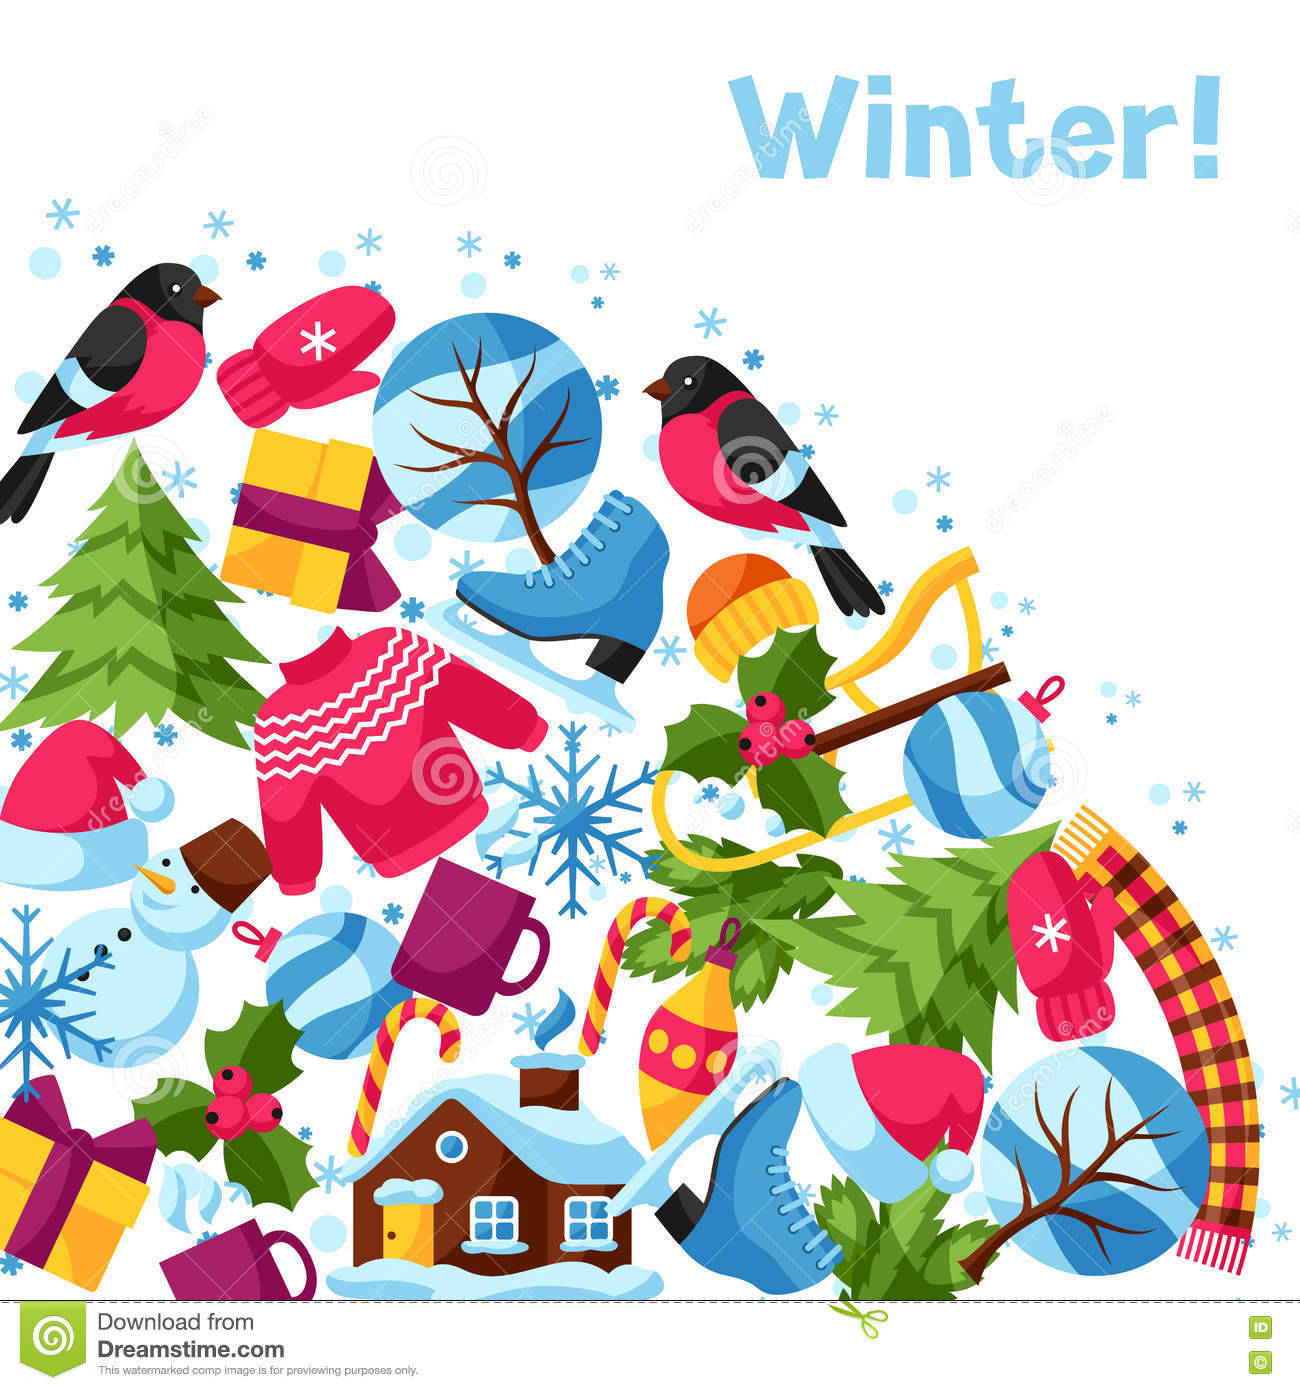 background with winter objects merry christmas happy new year holiday items and symbols